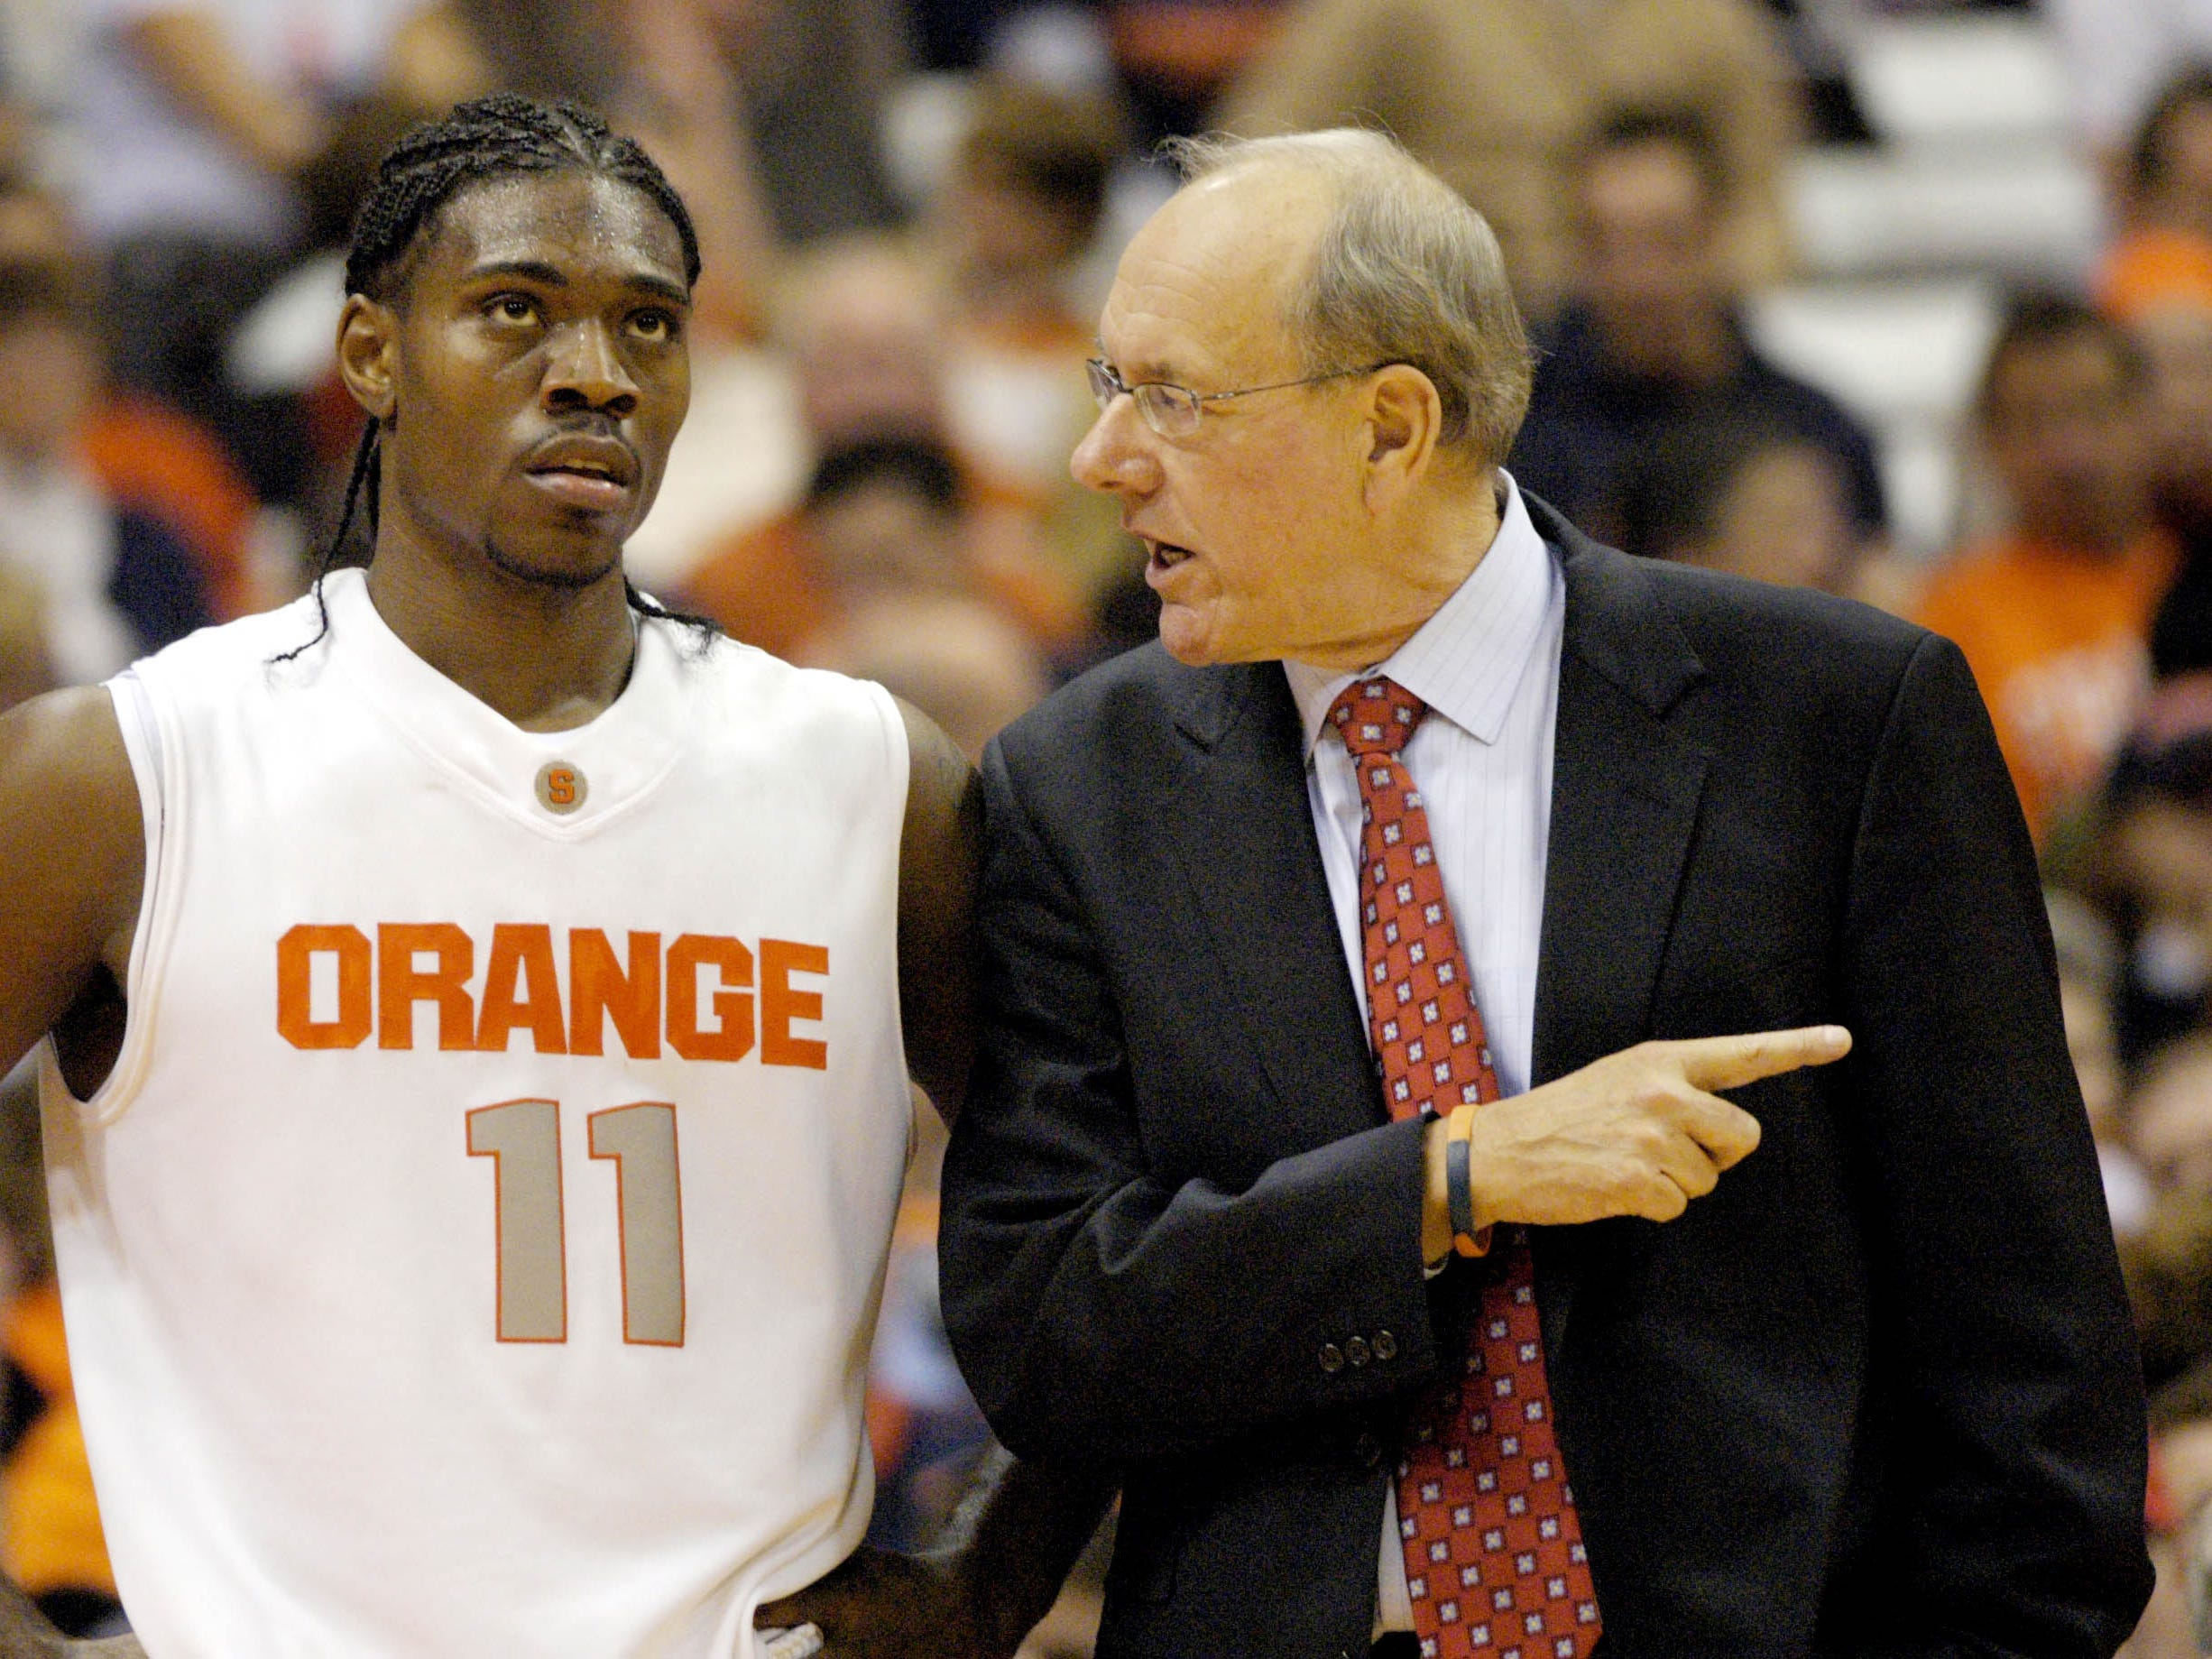 2007: Syracuse head coach Jim Boeheim, right, talks with player Paul Harris during the second half against Fordham in men's college basketball action in Syracuse, N.Y., Friday, Nov. 16, 2007.  Syracuse won 80-63. (AP Photo/Kevin Rivoli)